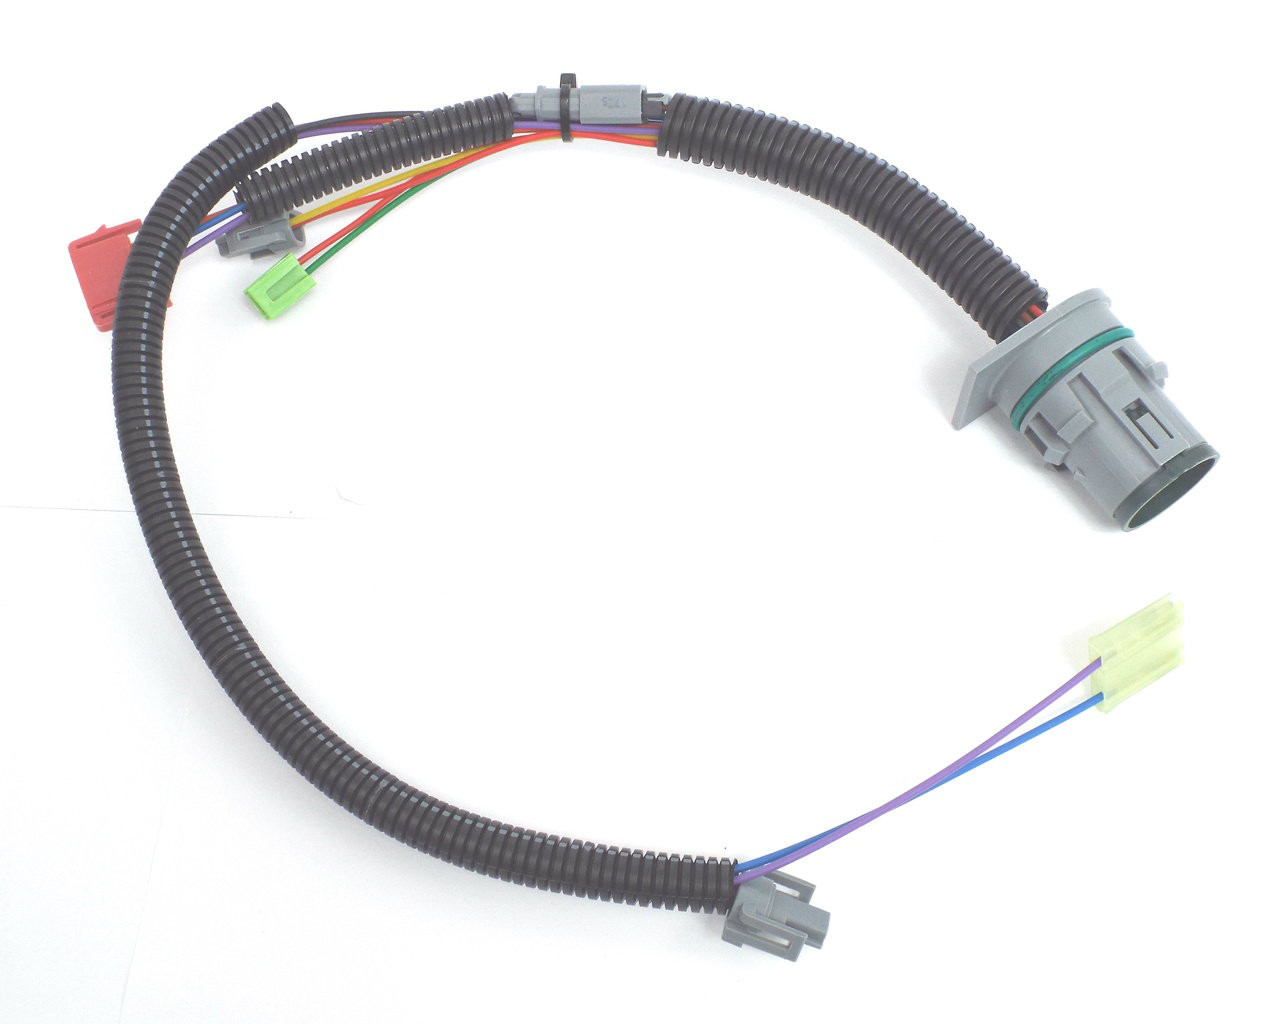 Hmmwv 4l80e Wiring Harness Reinvent Your Diagram 4t65e New Transmission Hd Internal Valve Body 1991 2003 Rh Globaltransmissionparts Com 1995 Chevy Automatic